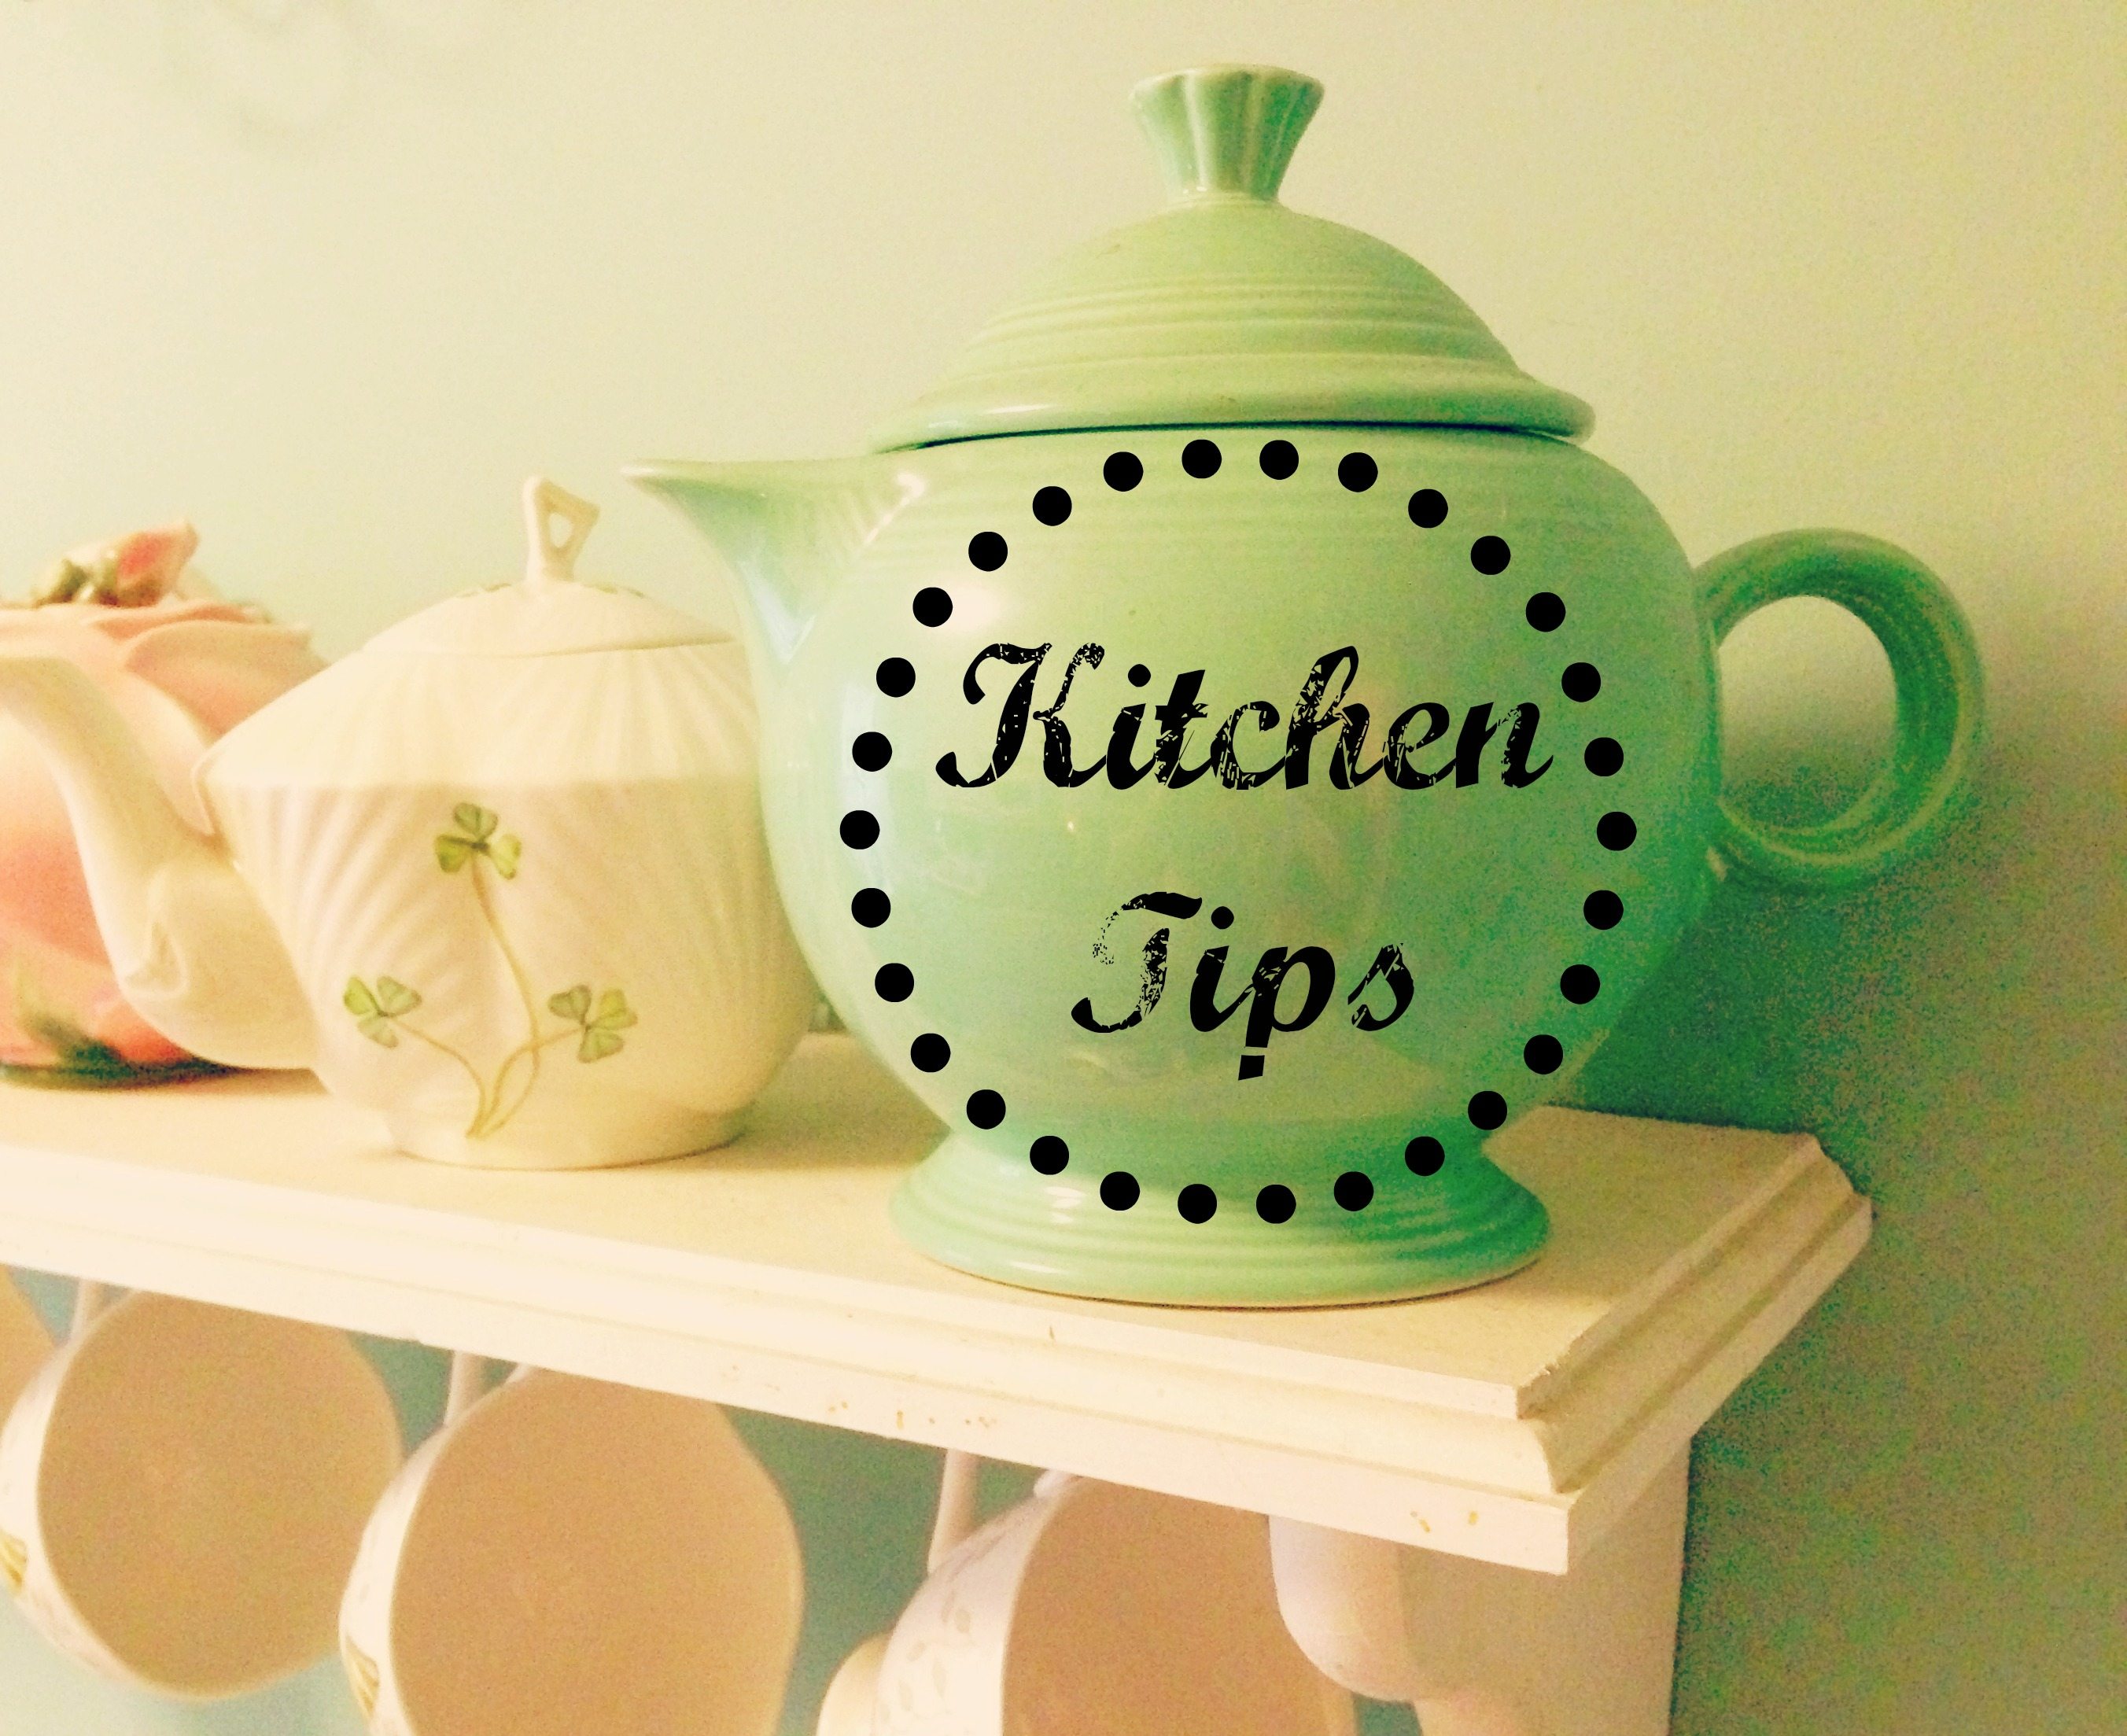 Captivating Kitchen Tips